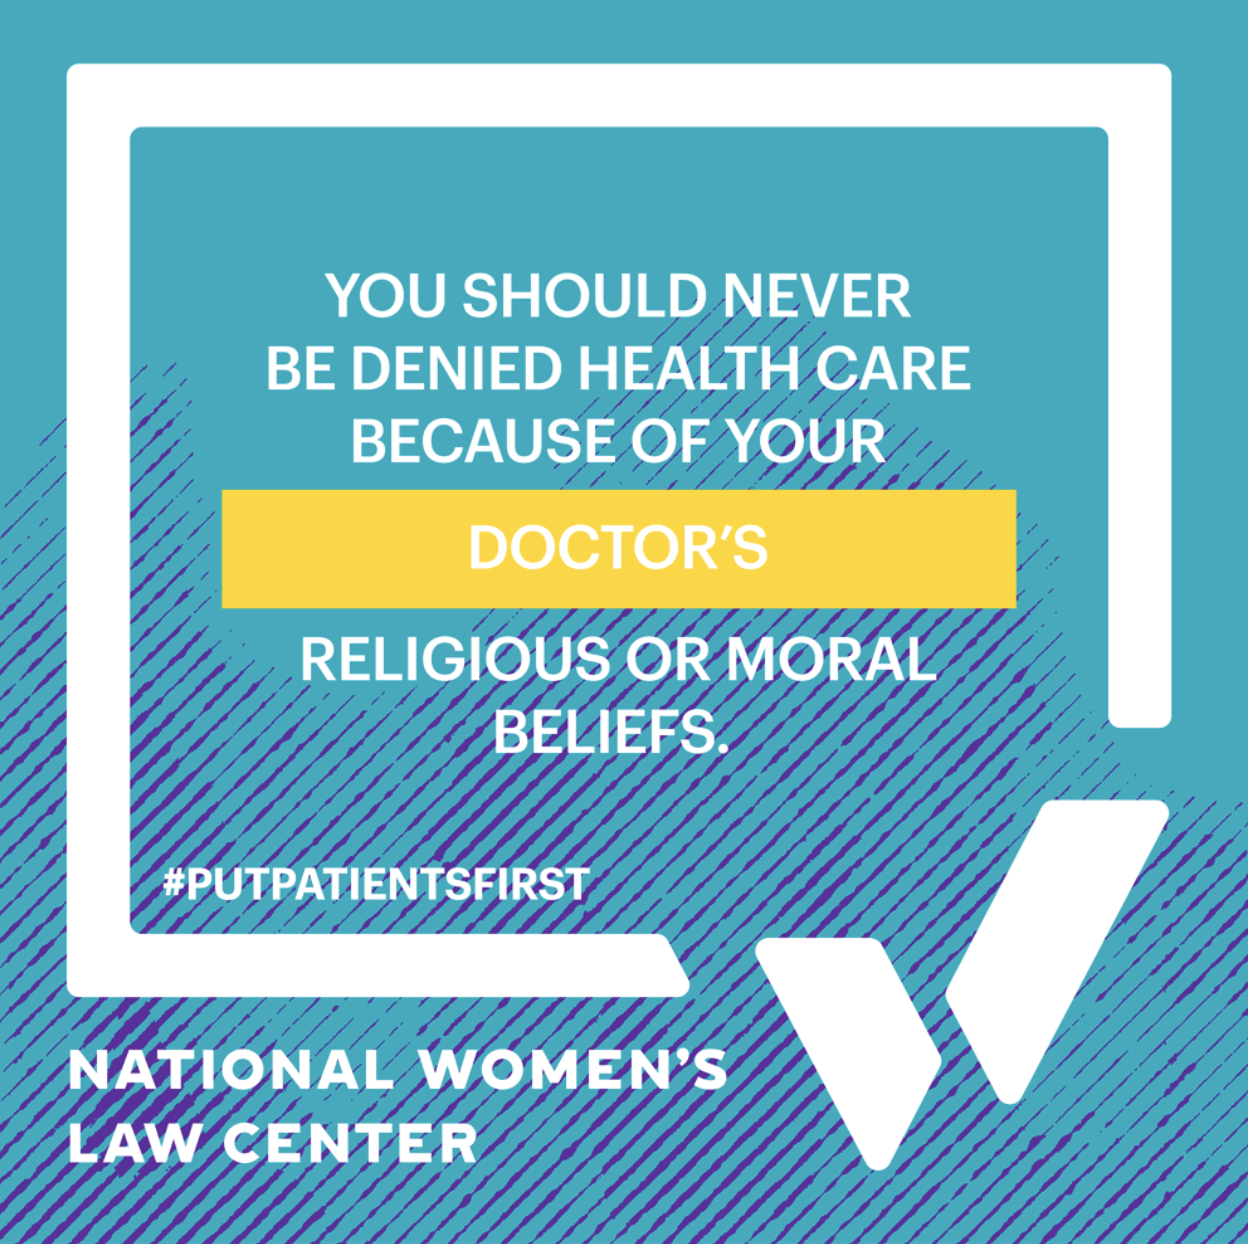 You should never be denied healthcare because of your doctor's religious or moral beliefs.